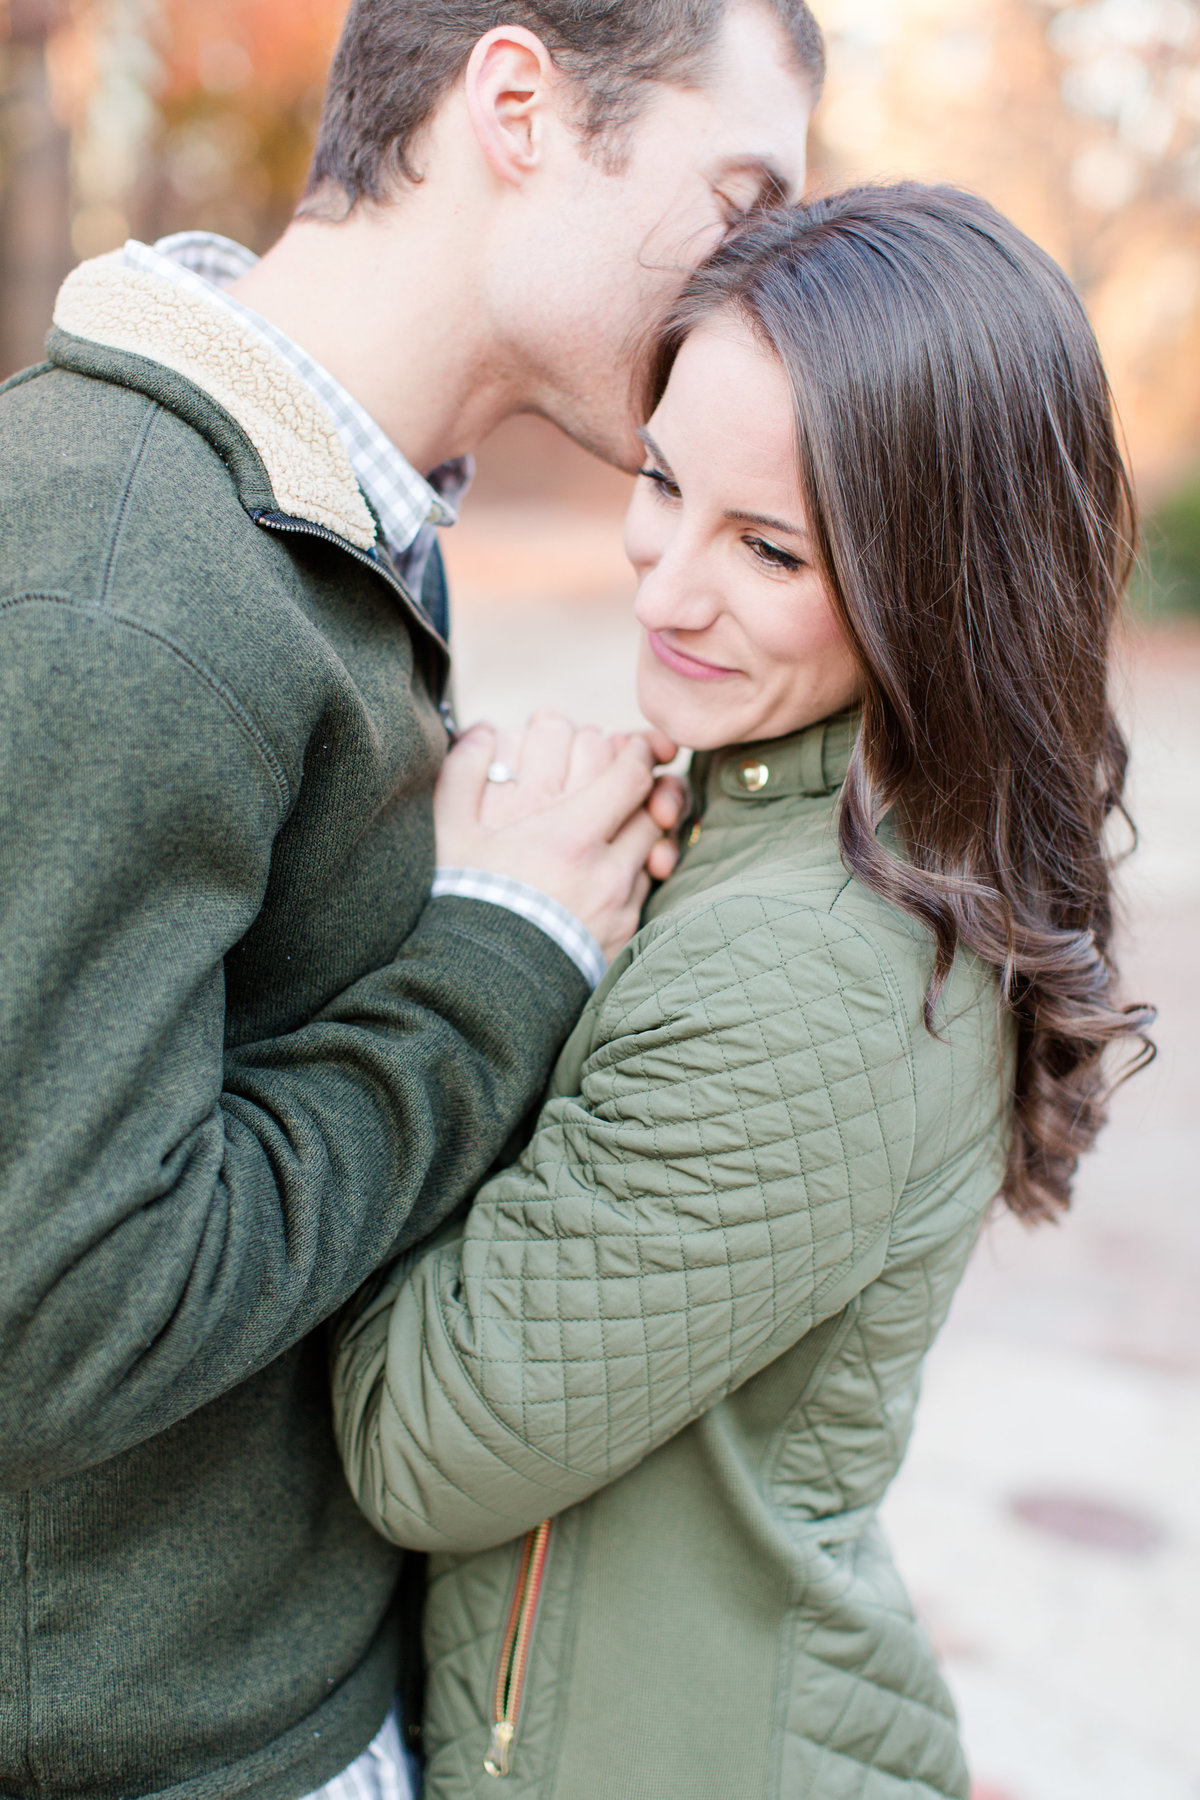 fall-george-mason-university-fairfax-va-engagement-kathy-jack-bethanne-arthur-photography-photos-133